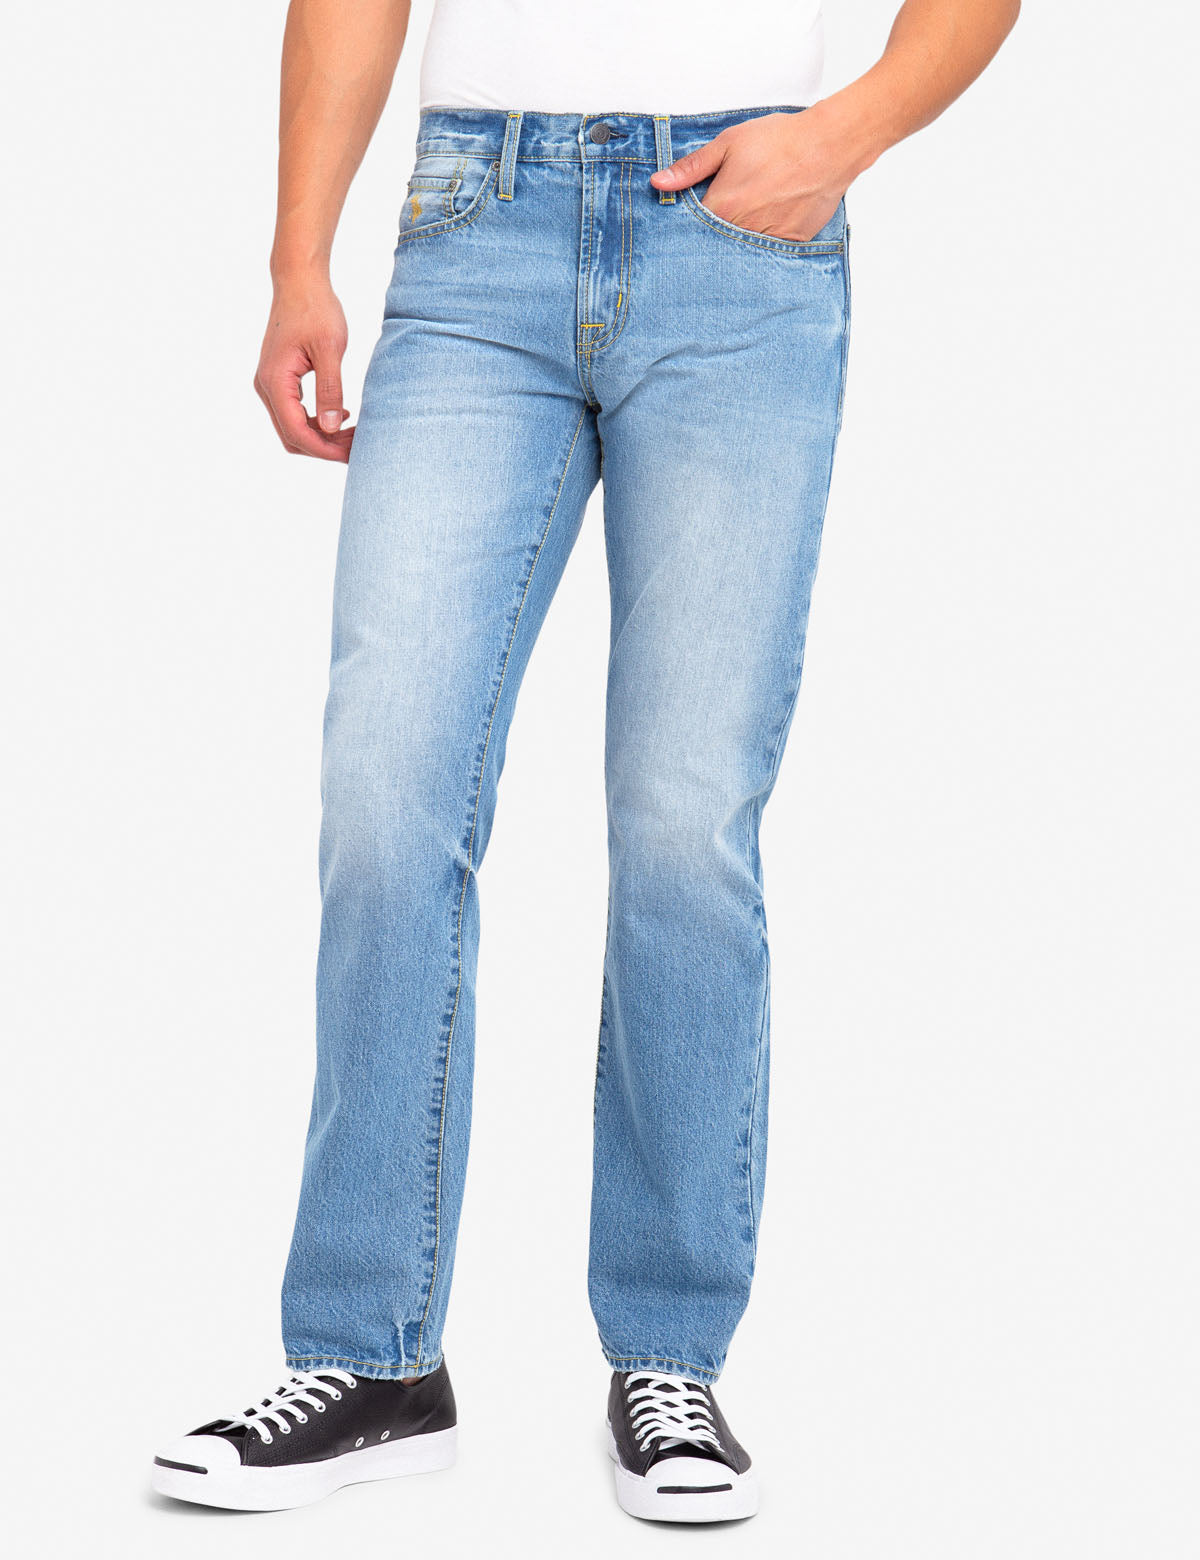 U.S. Polo Assn. - Mens Straight Fit Jeans